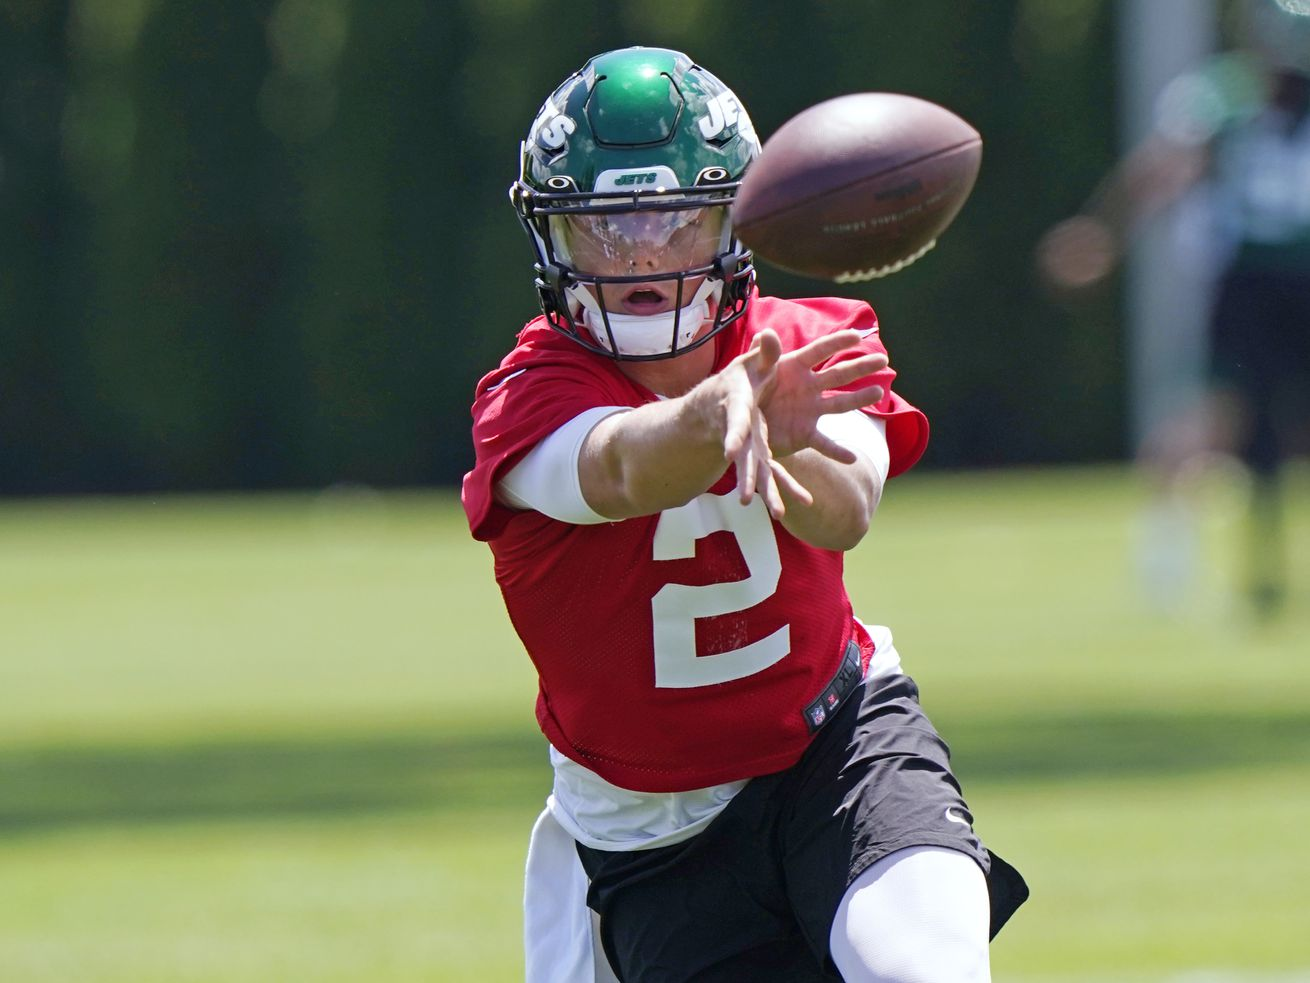 New York Jets quarterback Zach Wilson looks one way while tossing the ball the opposite way during NFL football practice.